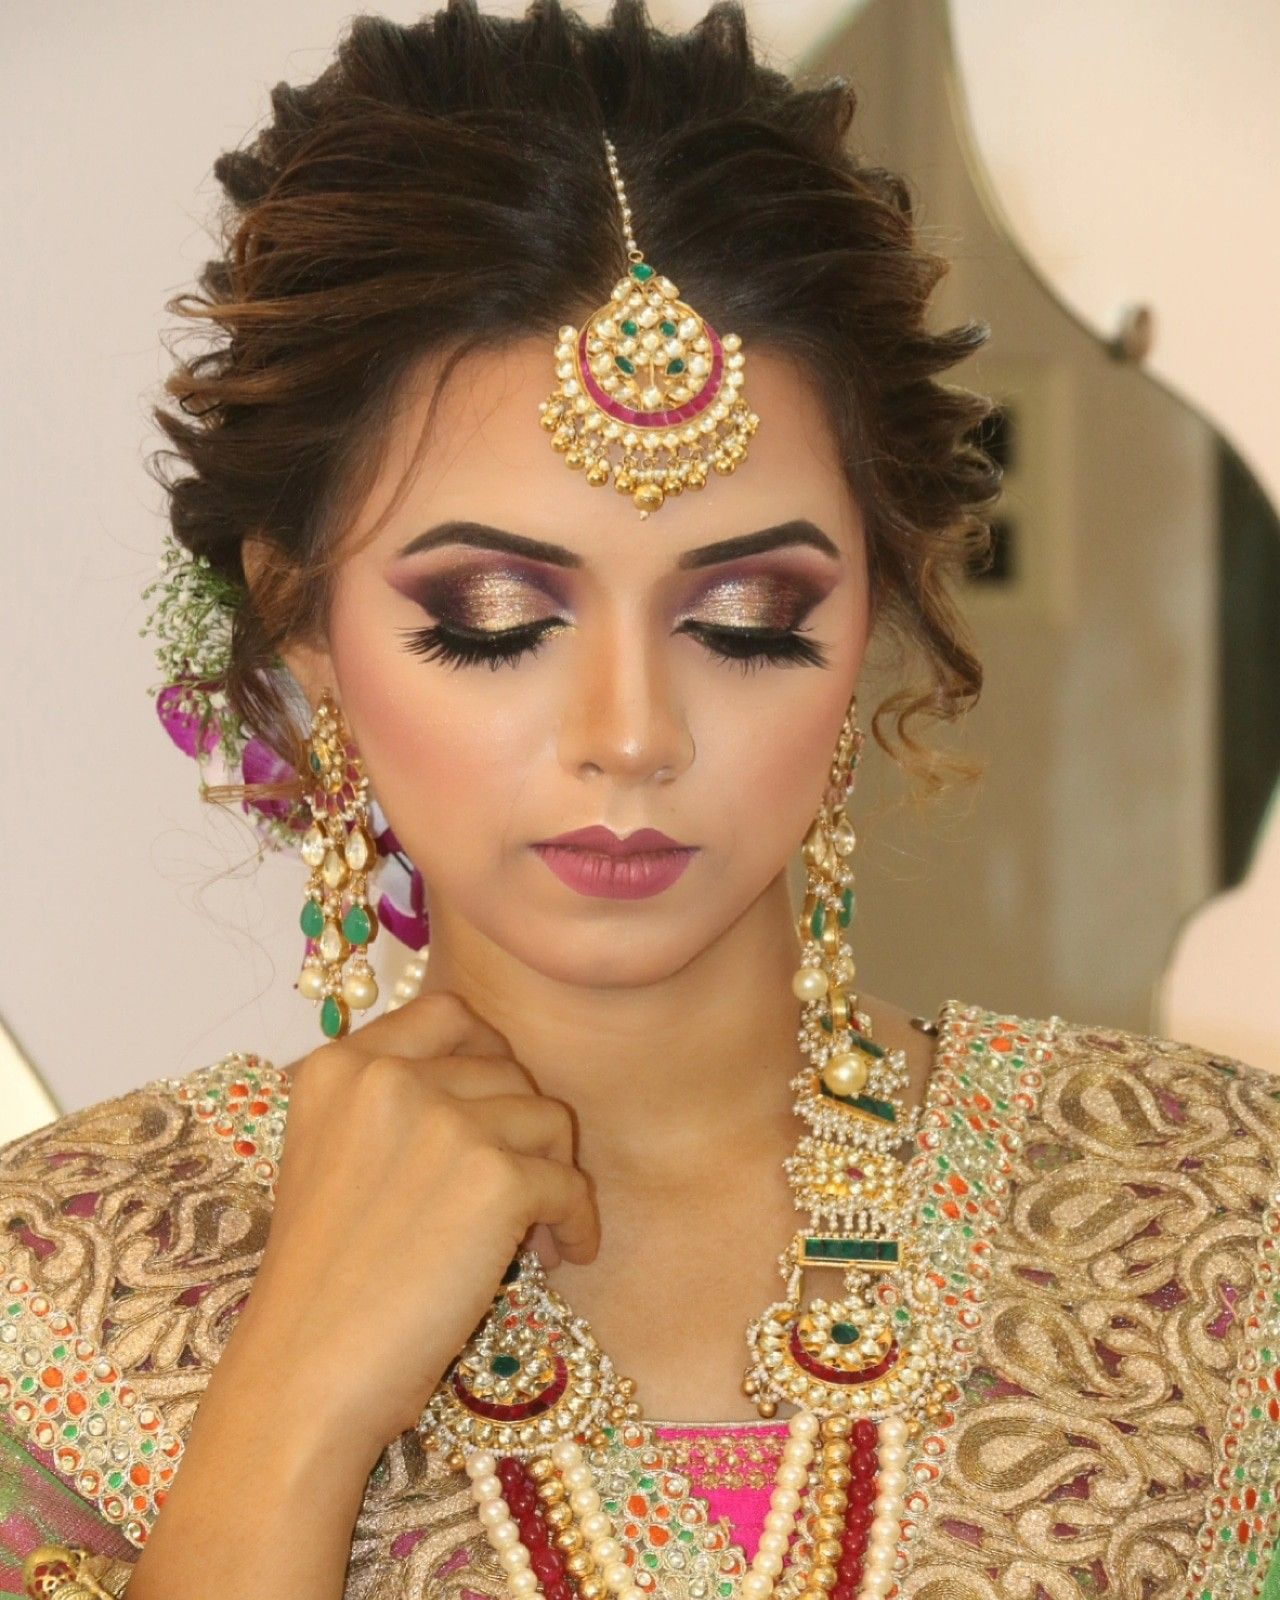 Pin By Amisha Salunkhe On Amimua Wedding Hair And Makeup Party